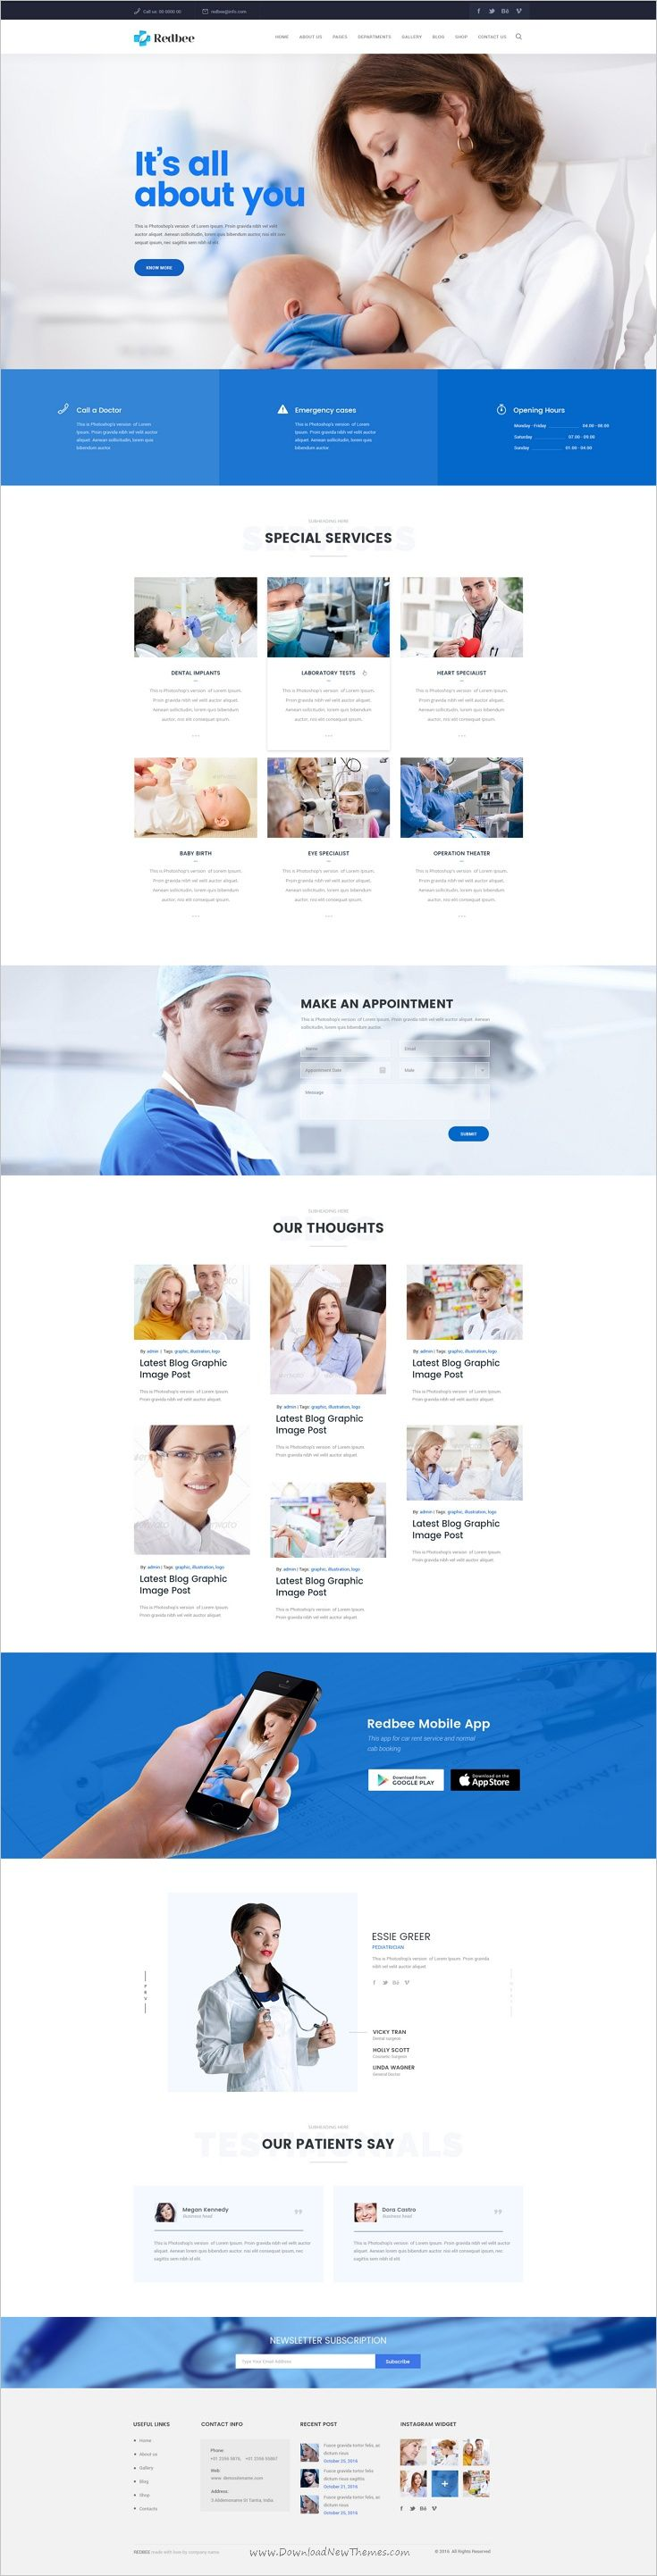 Redbee is a wonderful multipurpose #PSD template #webdev for stunning #medical website download now➩ https://themeforest.net/item/redbee-multipurpose-multi-business-psd-template-vol02/18710954?ref=Datasata